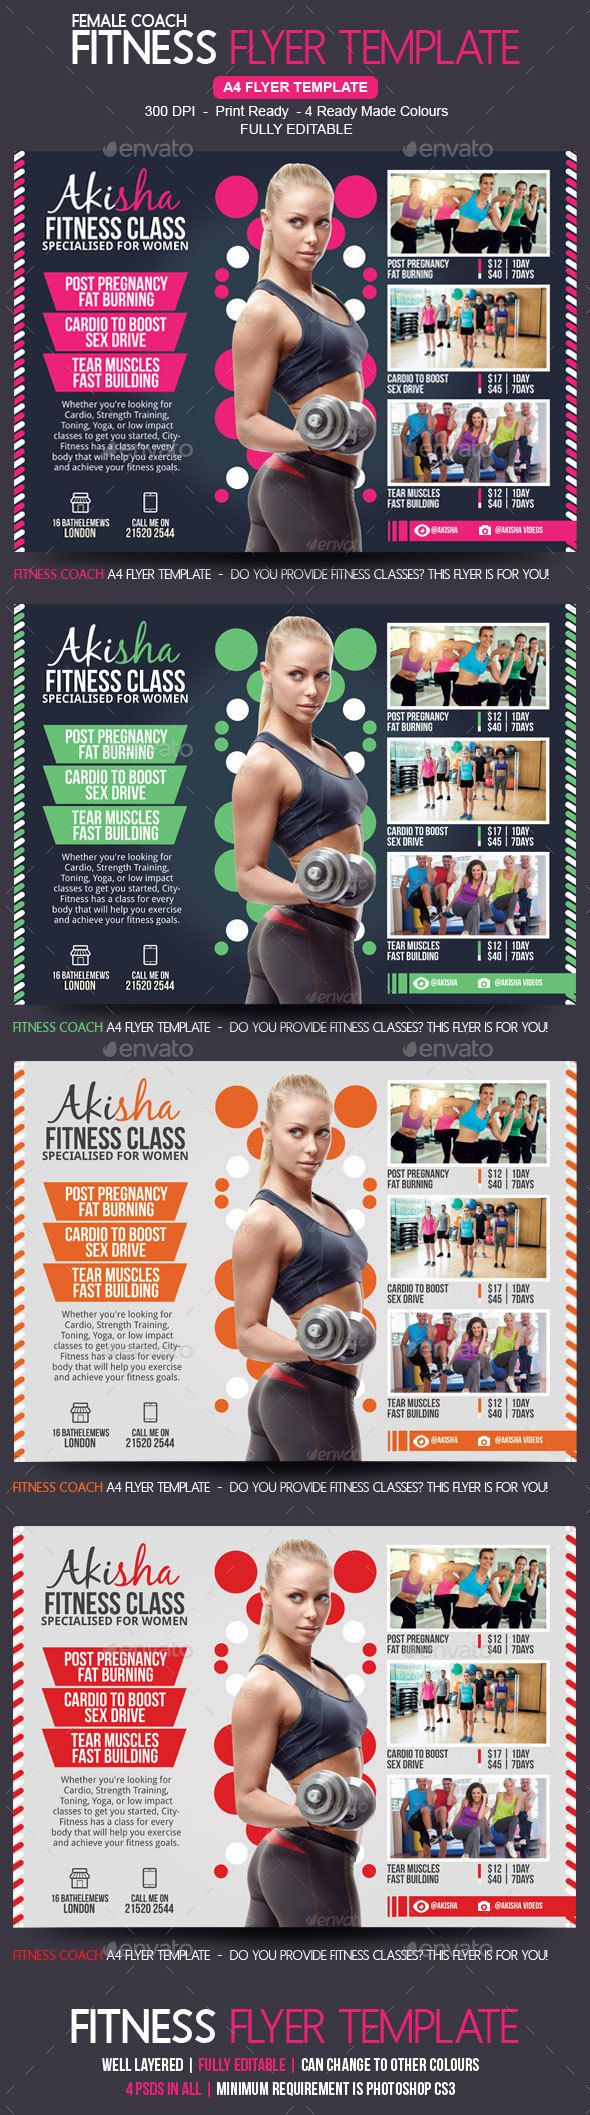 Fitness Class Flyer Template Corporate Flyers Poster art